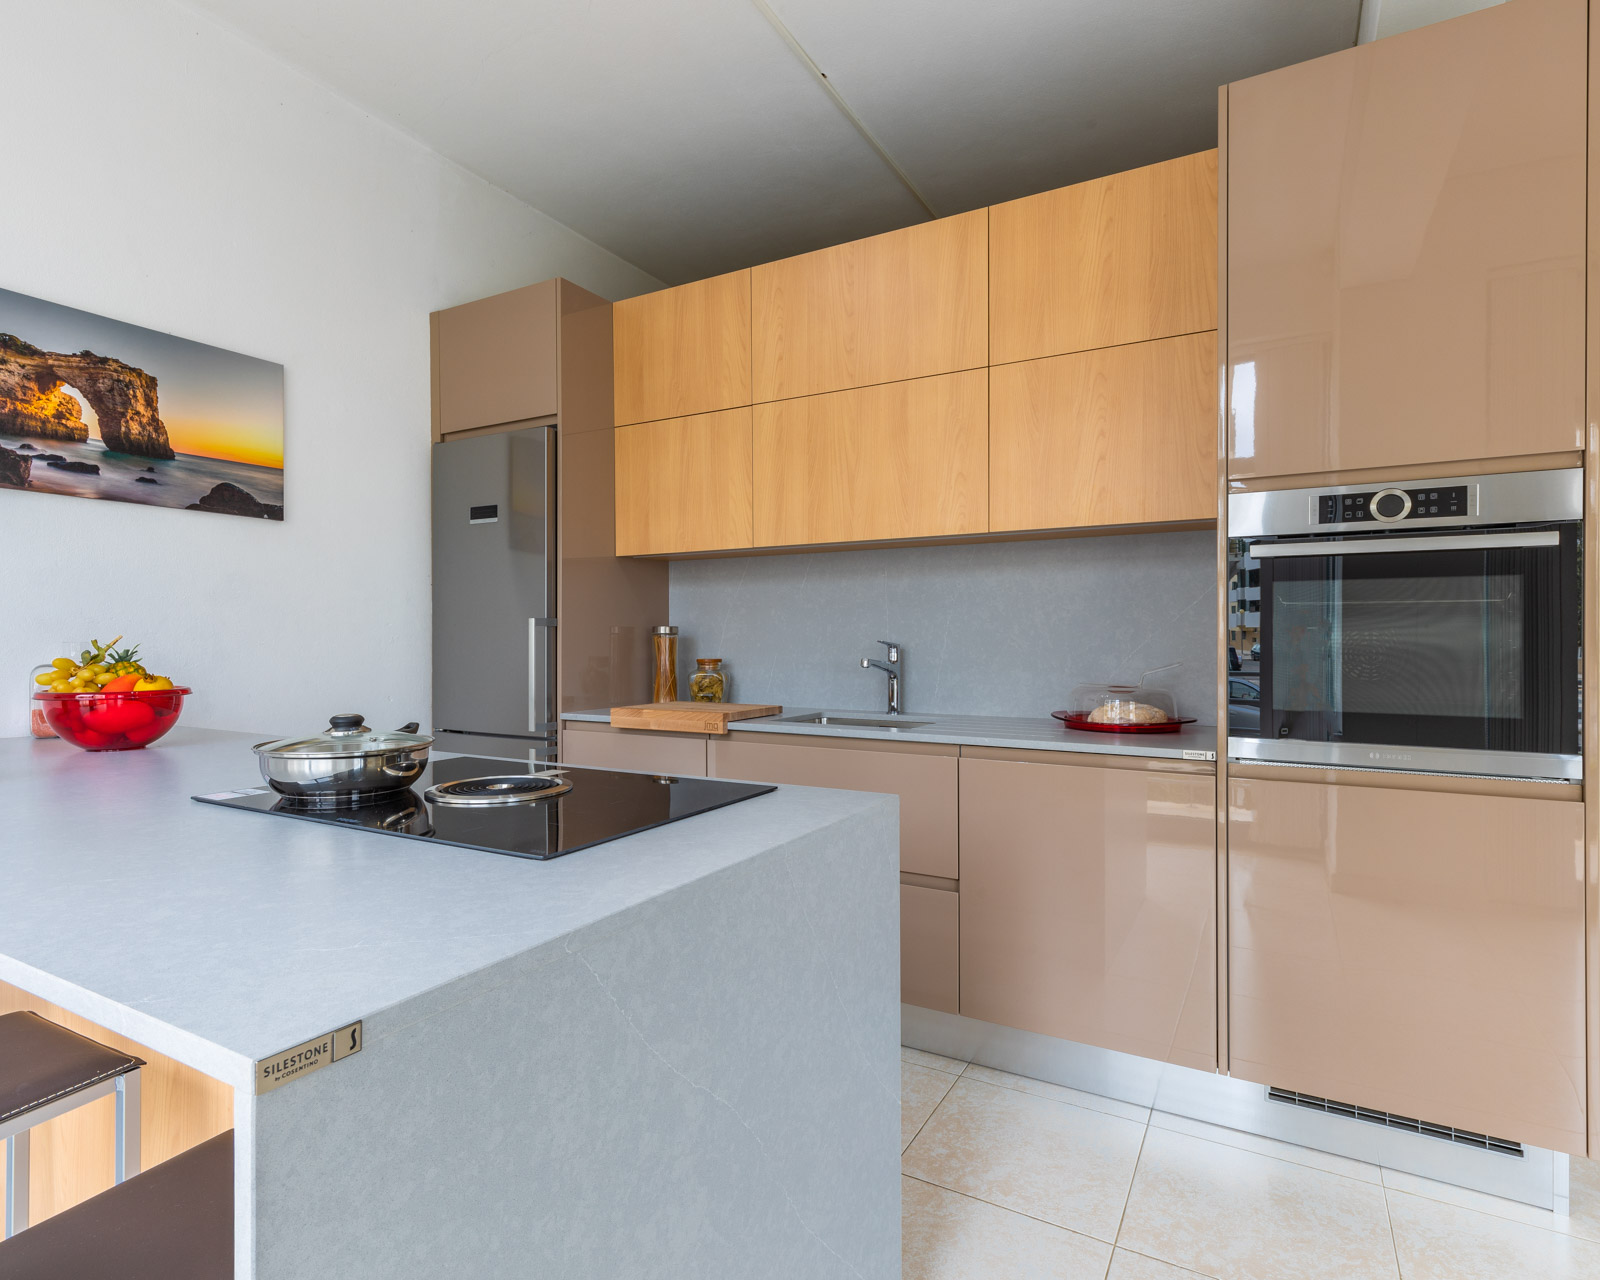 Kitchen in Showroom in Armação de Pêra, with lacquered and melamine fronts. Worktop and splashback Silestone.